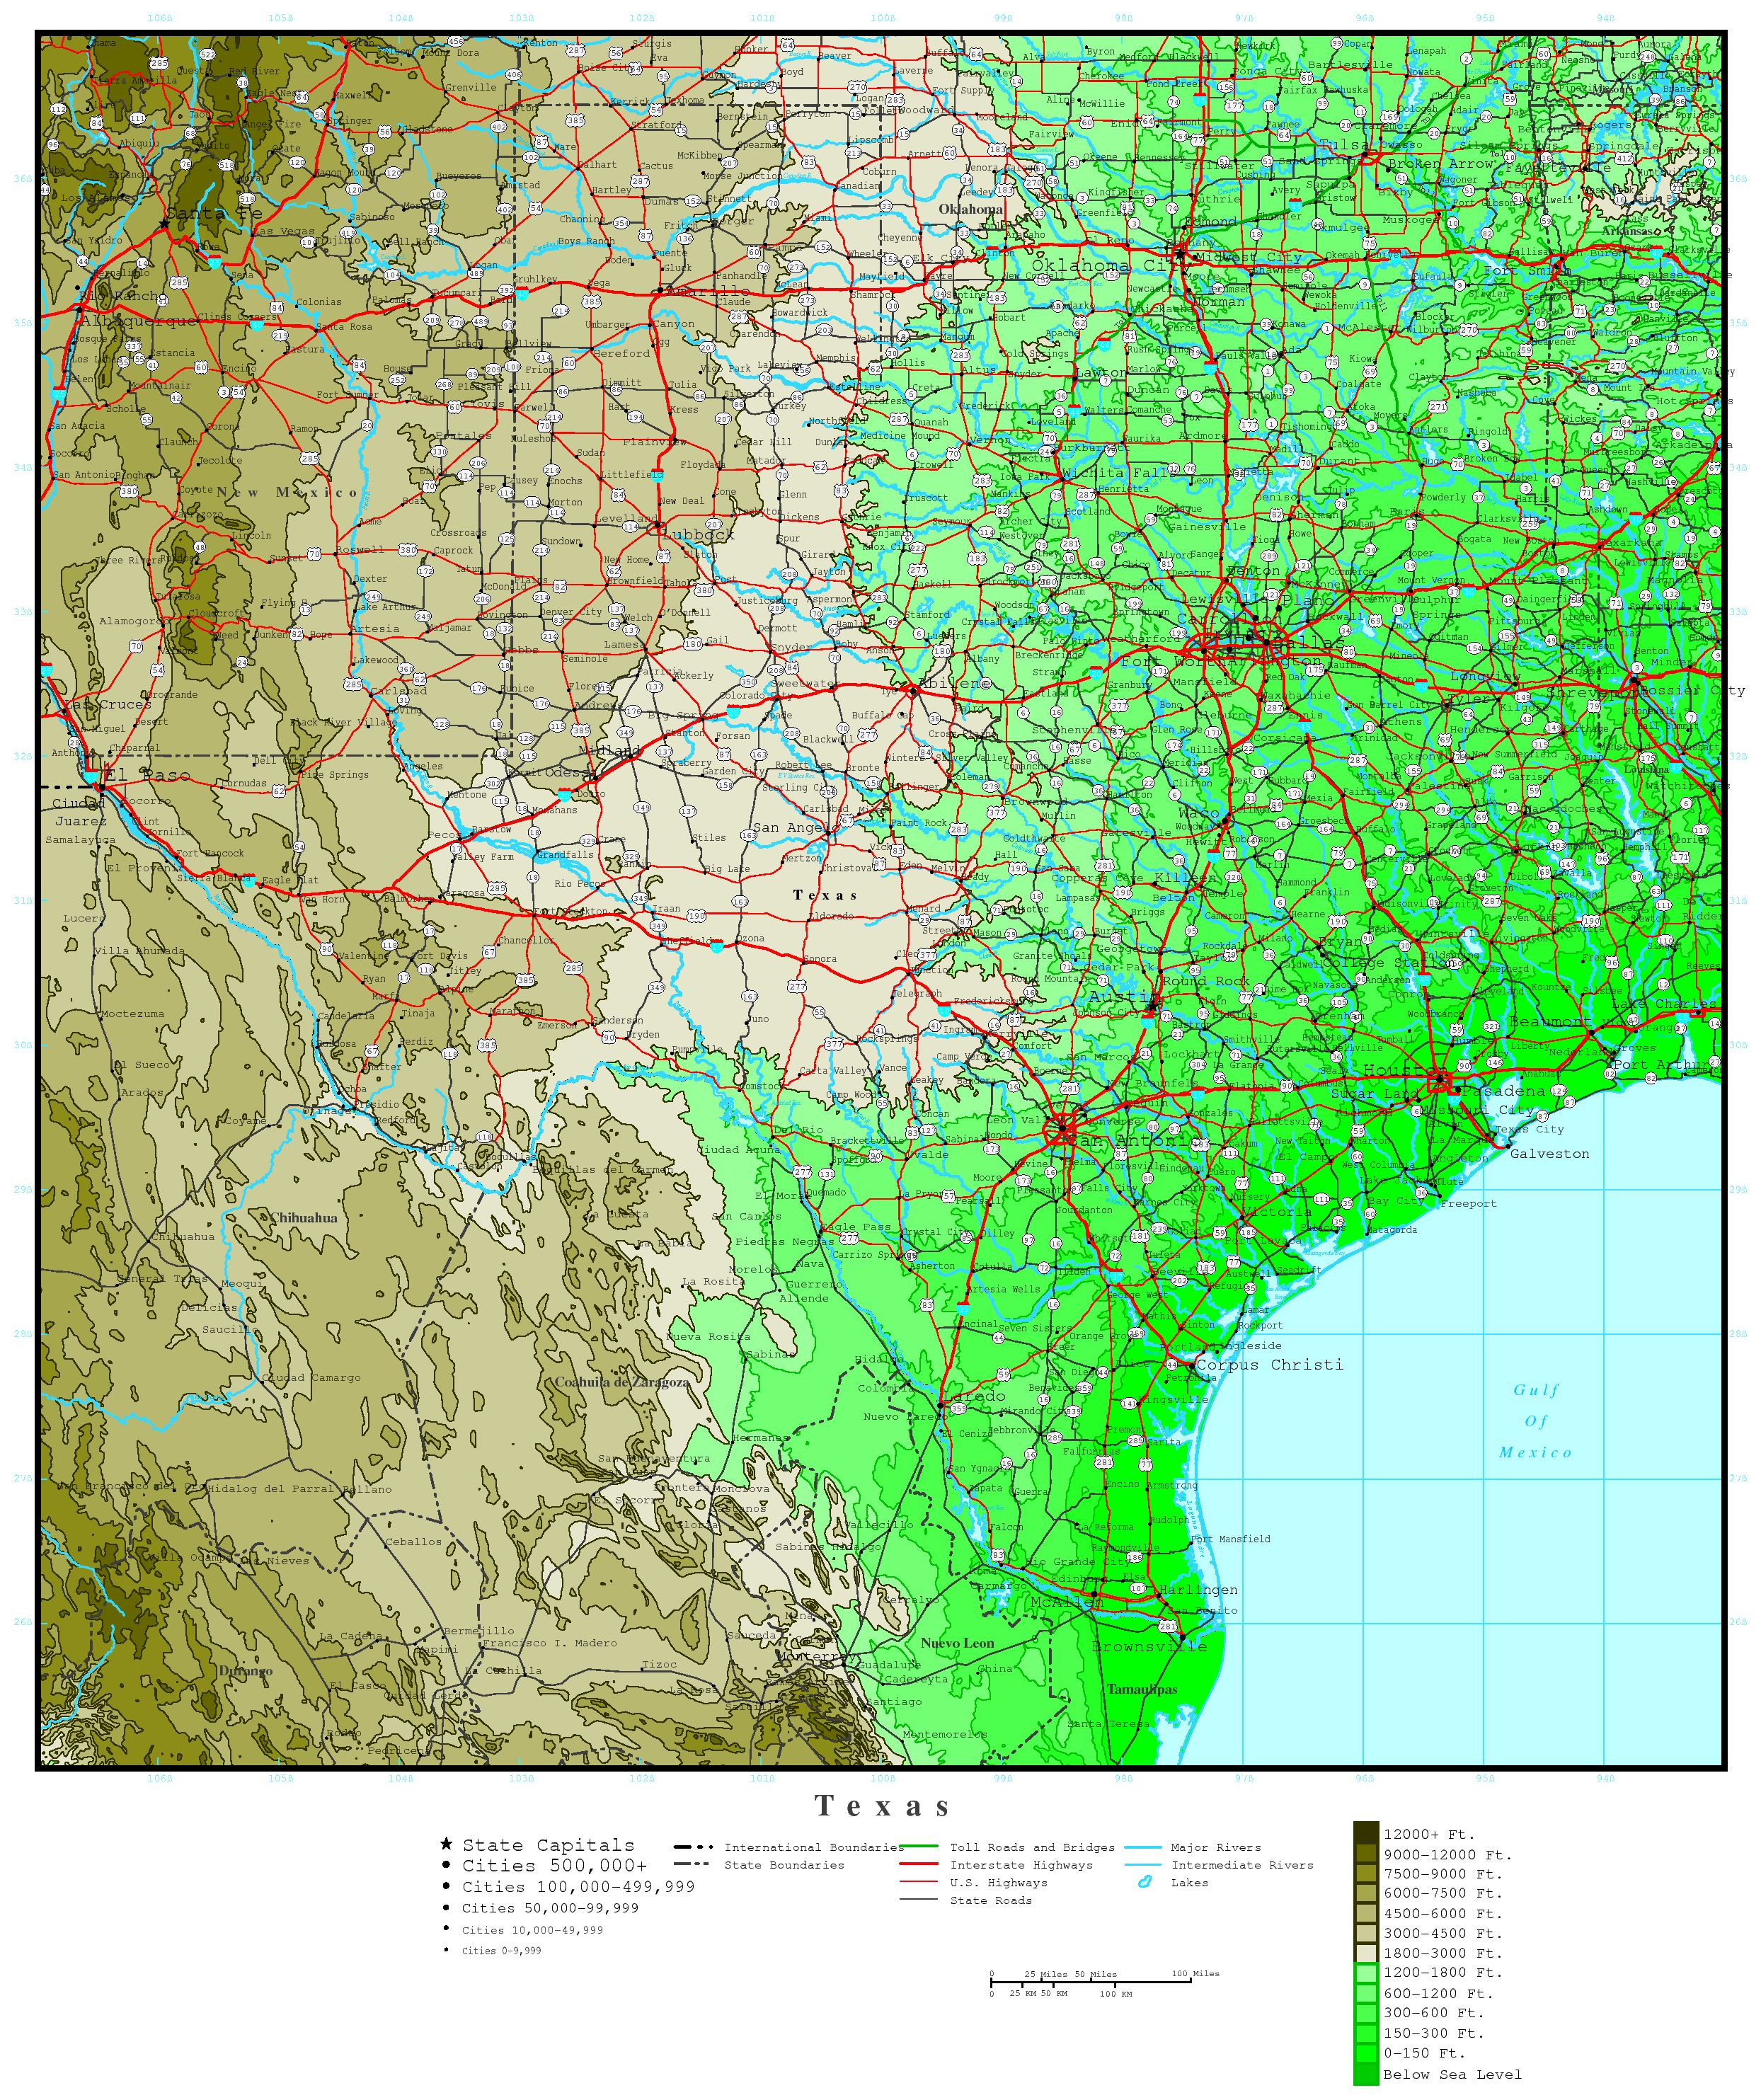 Elevation Map of Texas Elevation Map of Texas State